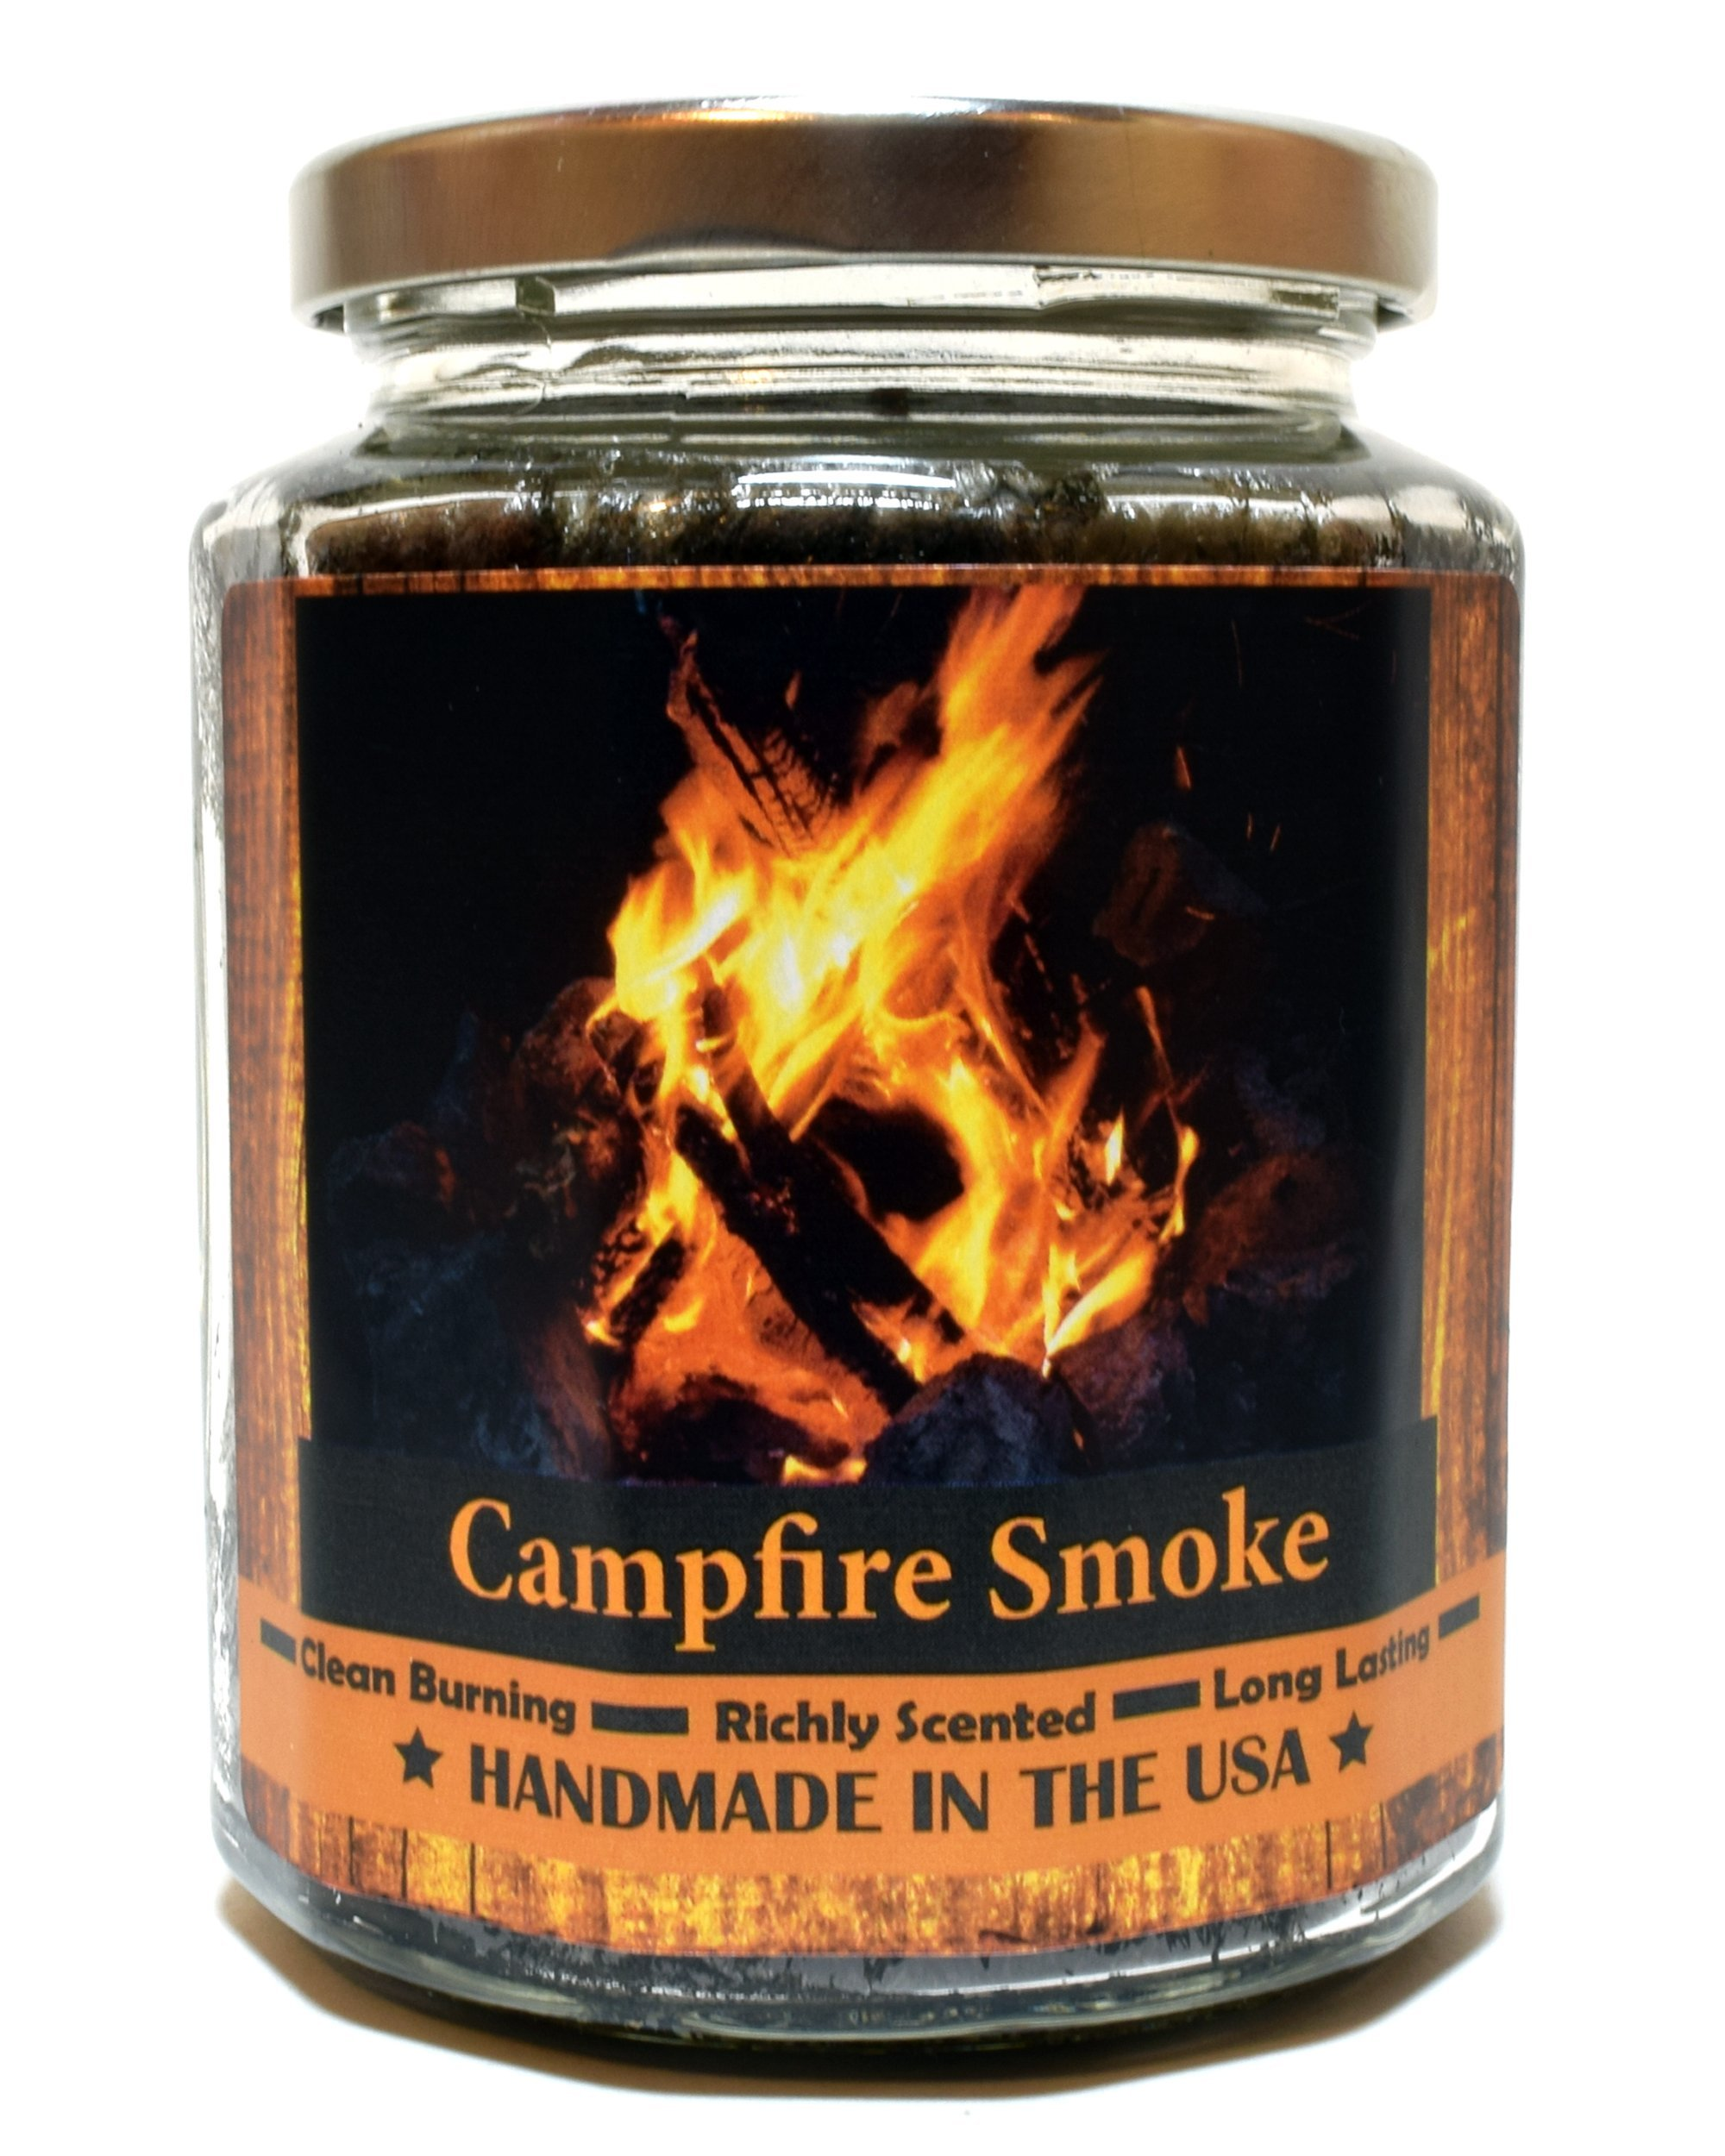 Campfire Smoke Wood Wick Candle, Super Scented Natural Wax Candle, Burning Wood Fireplace Candle (12 oz)